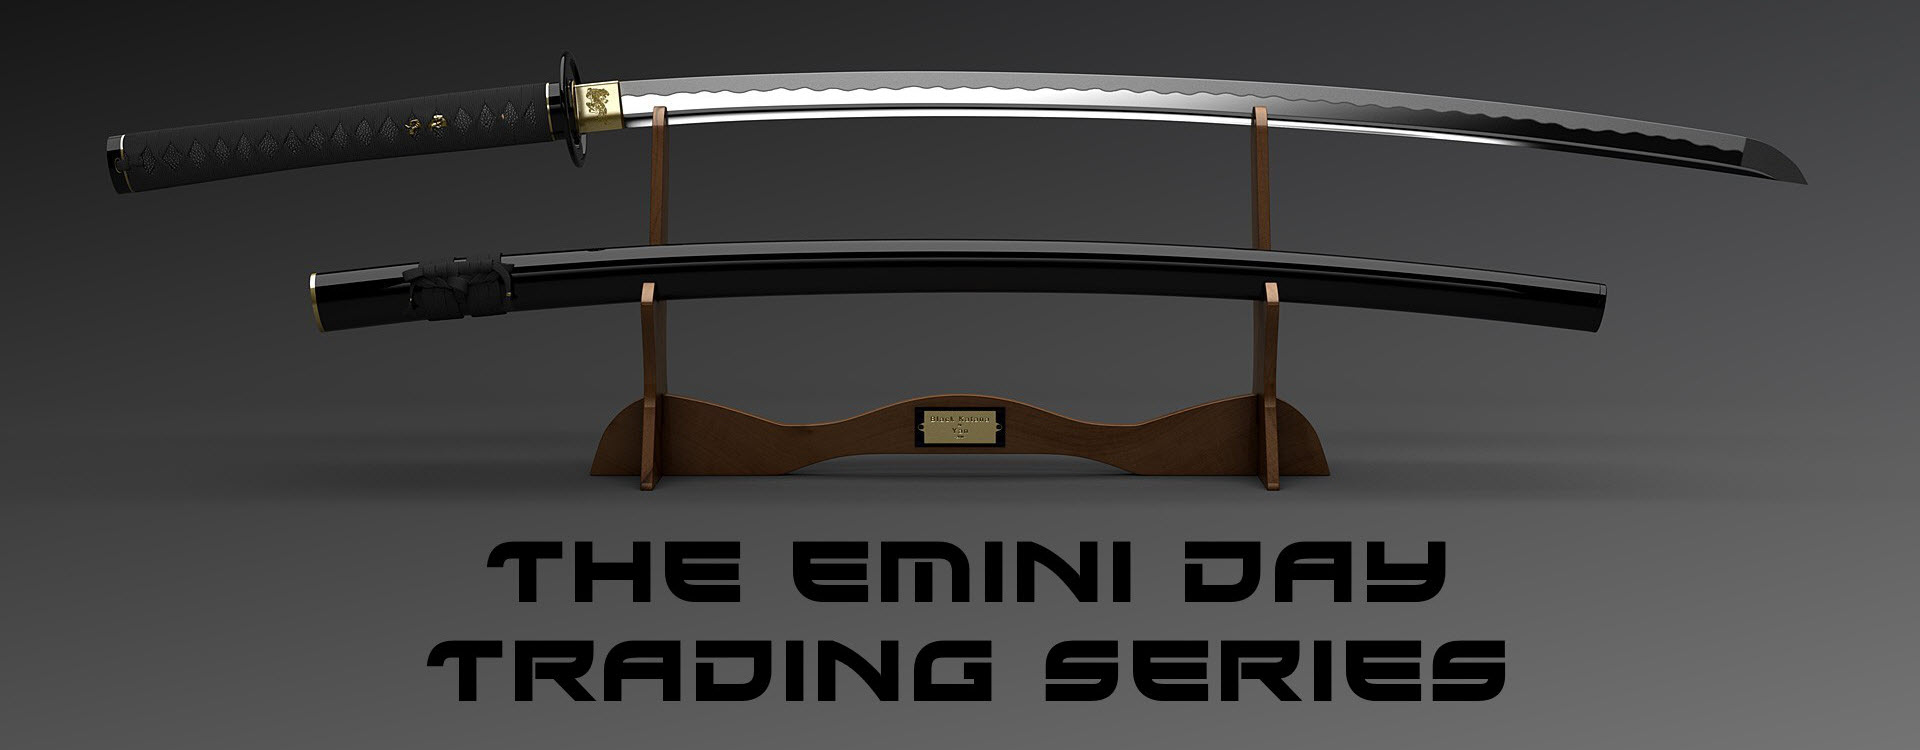 The Emini Day Trading Series Sword